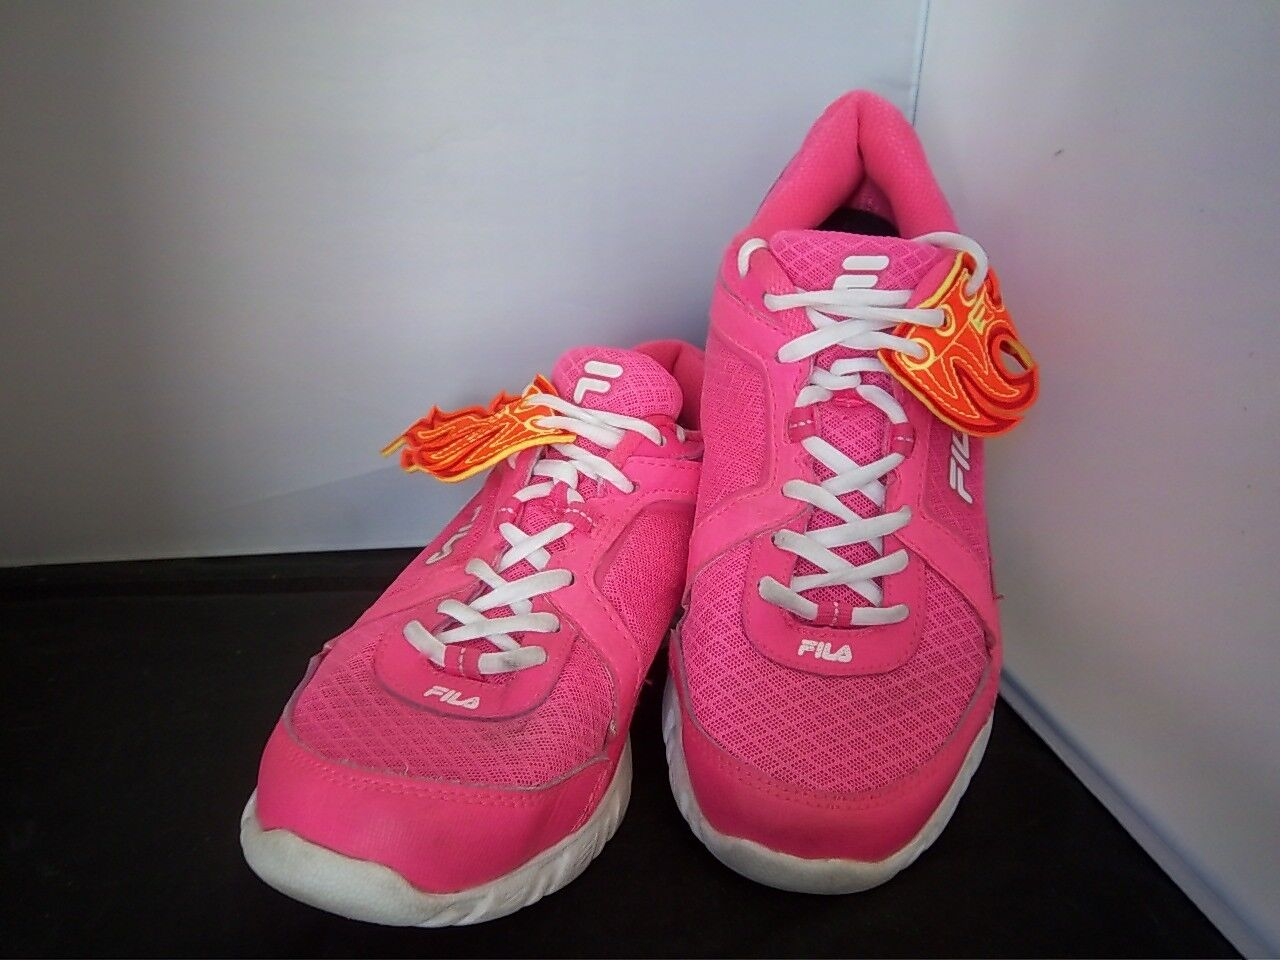 FILA - Women's Hot Pink Athletic Shoes - SIZE 10 Comfortable and good-looking